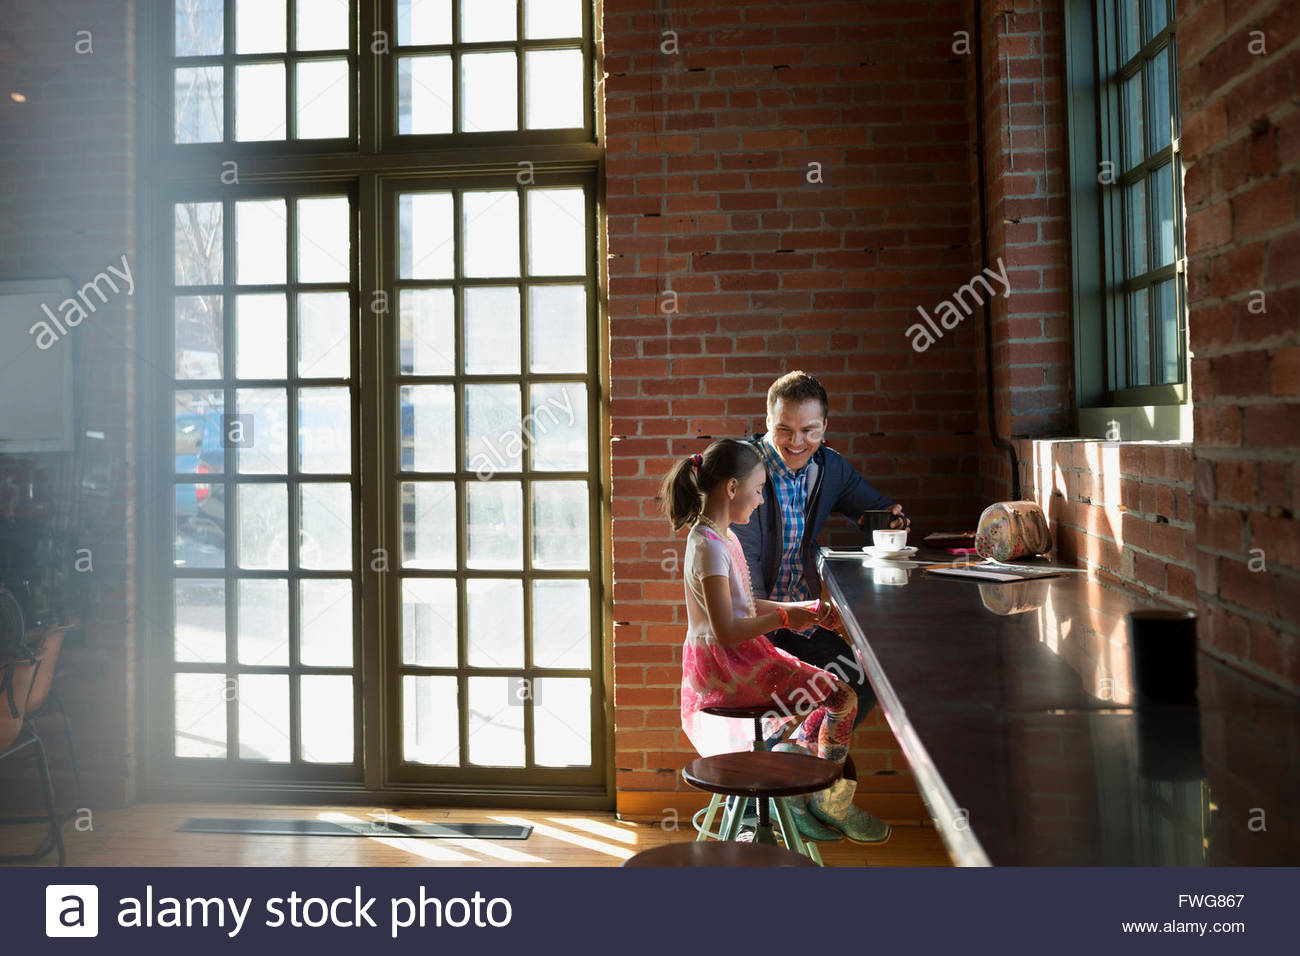 Father and daughter enjoying coffee in coffee shop Photo Stock